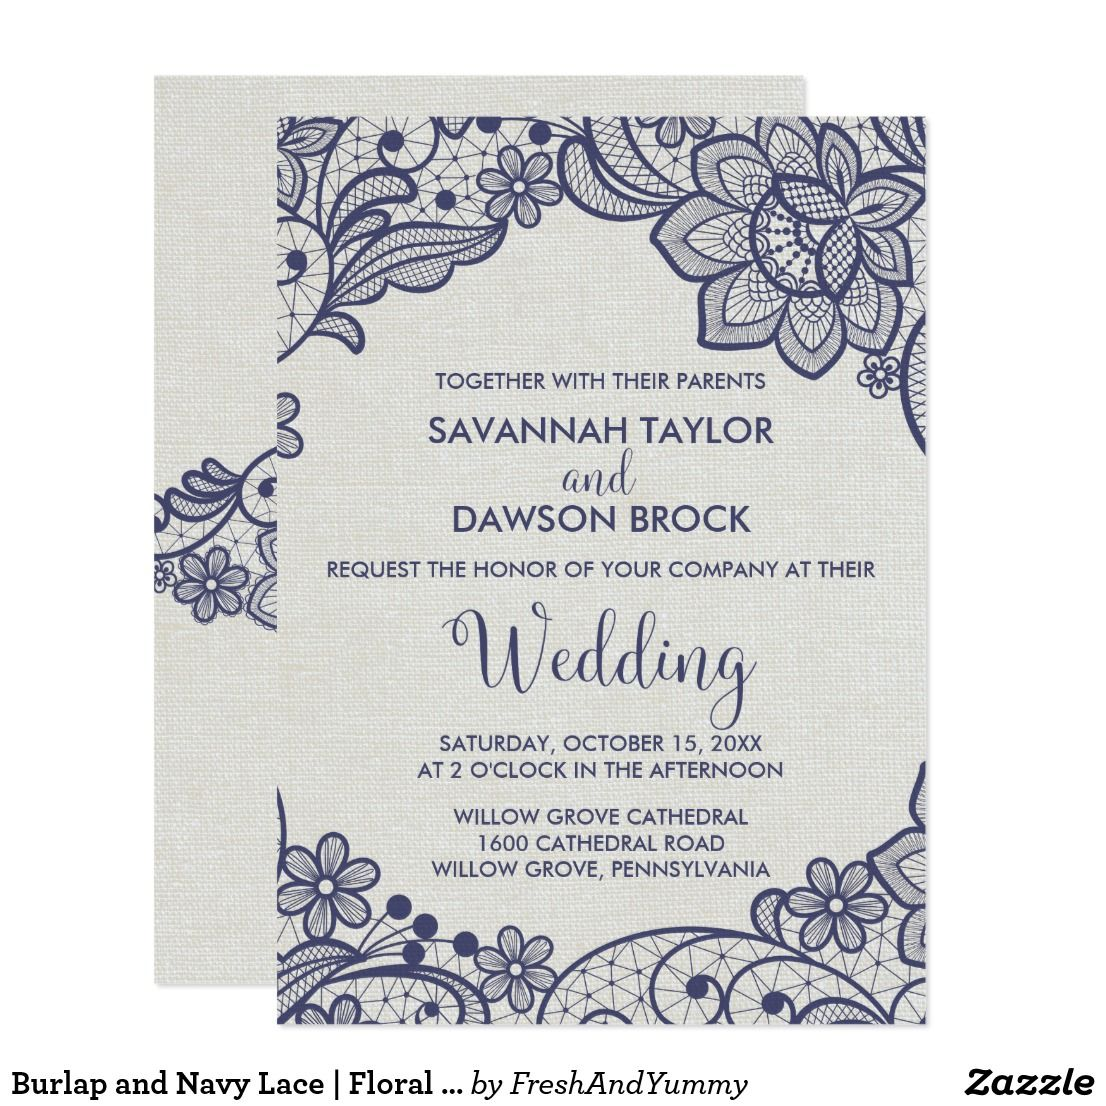 Burlap and navy lace floral wedding invitation wedding lace